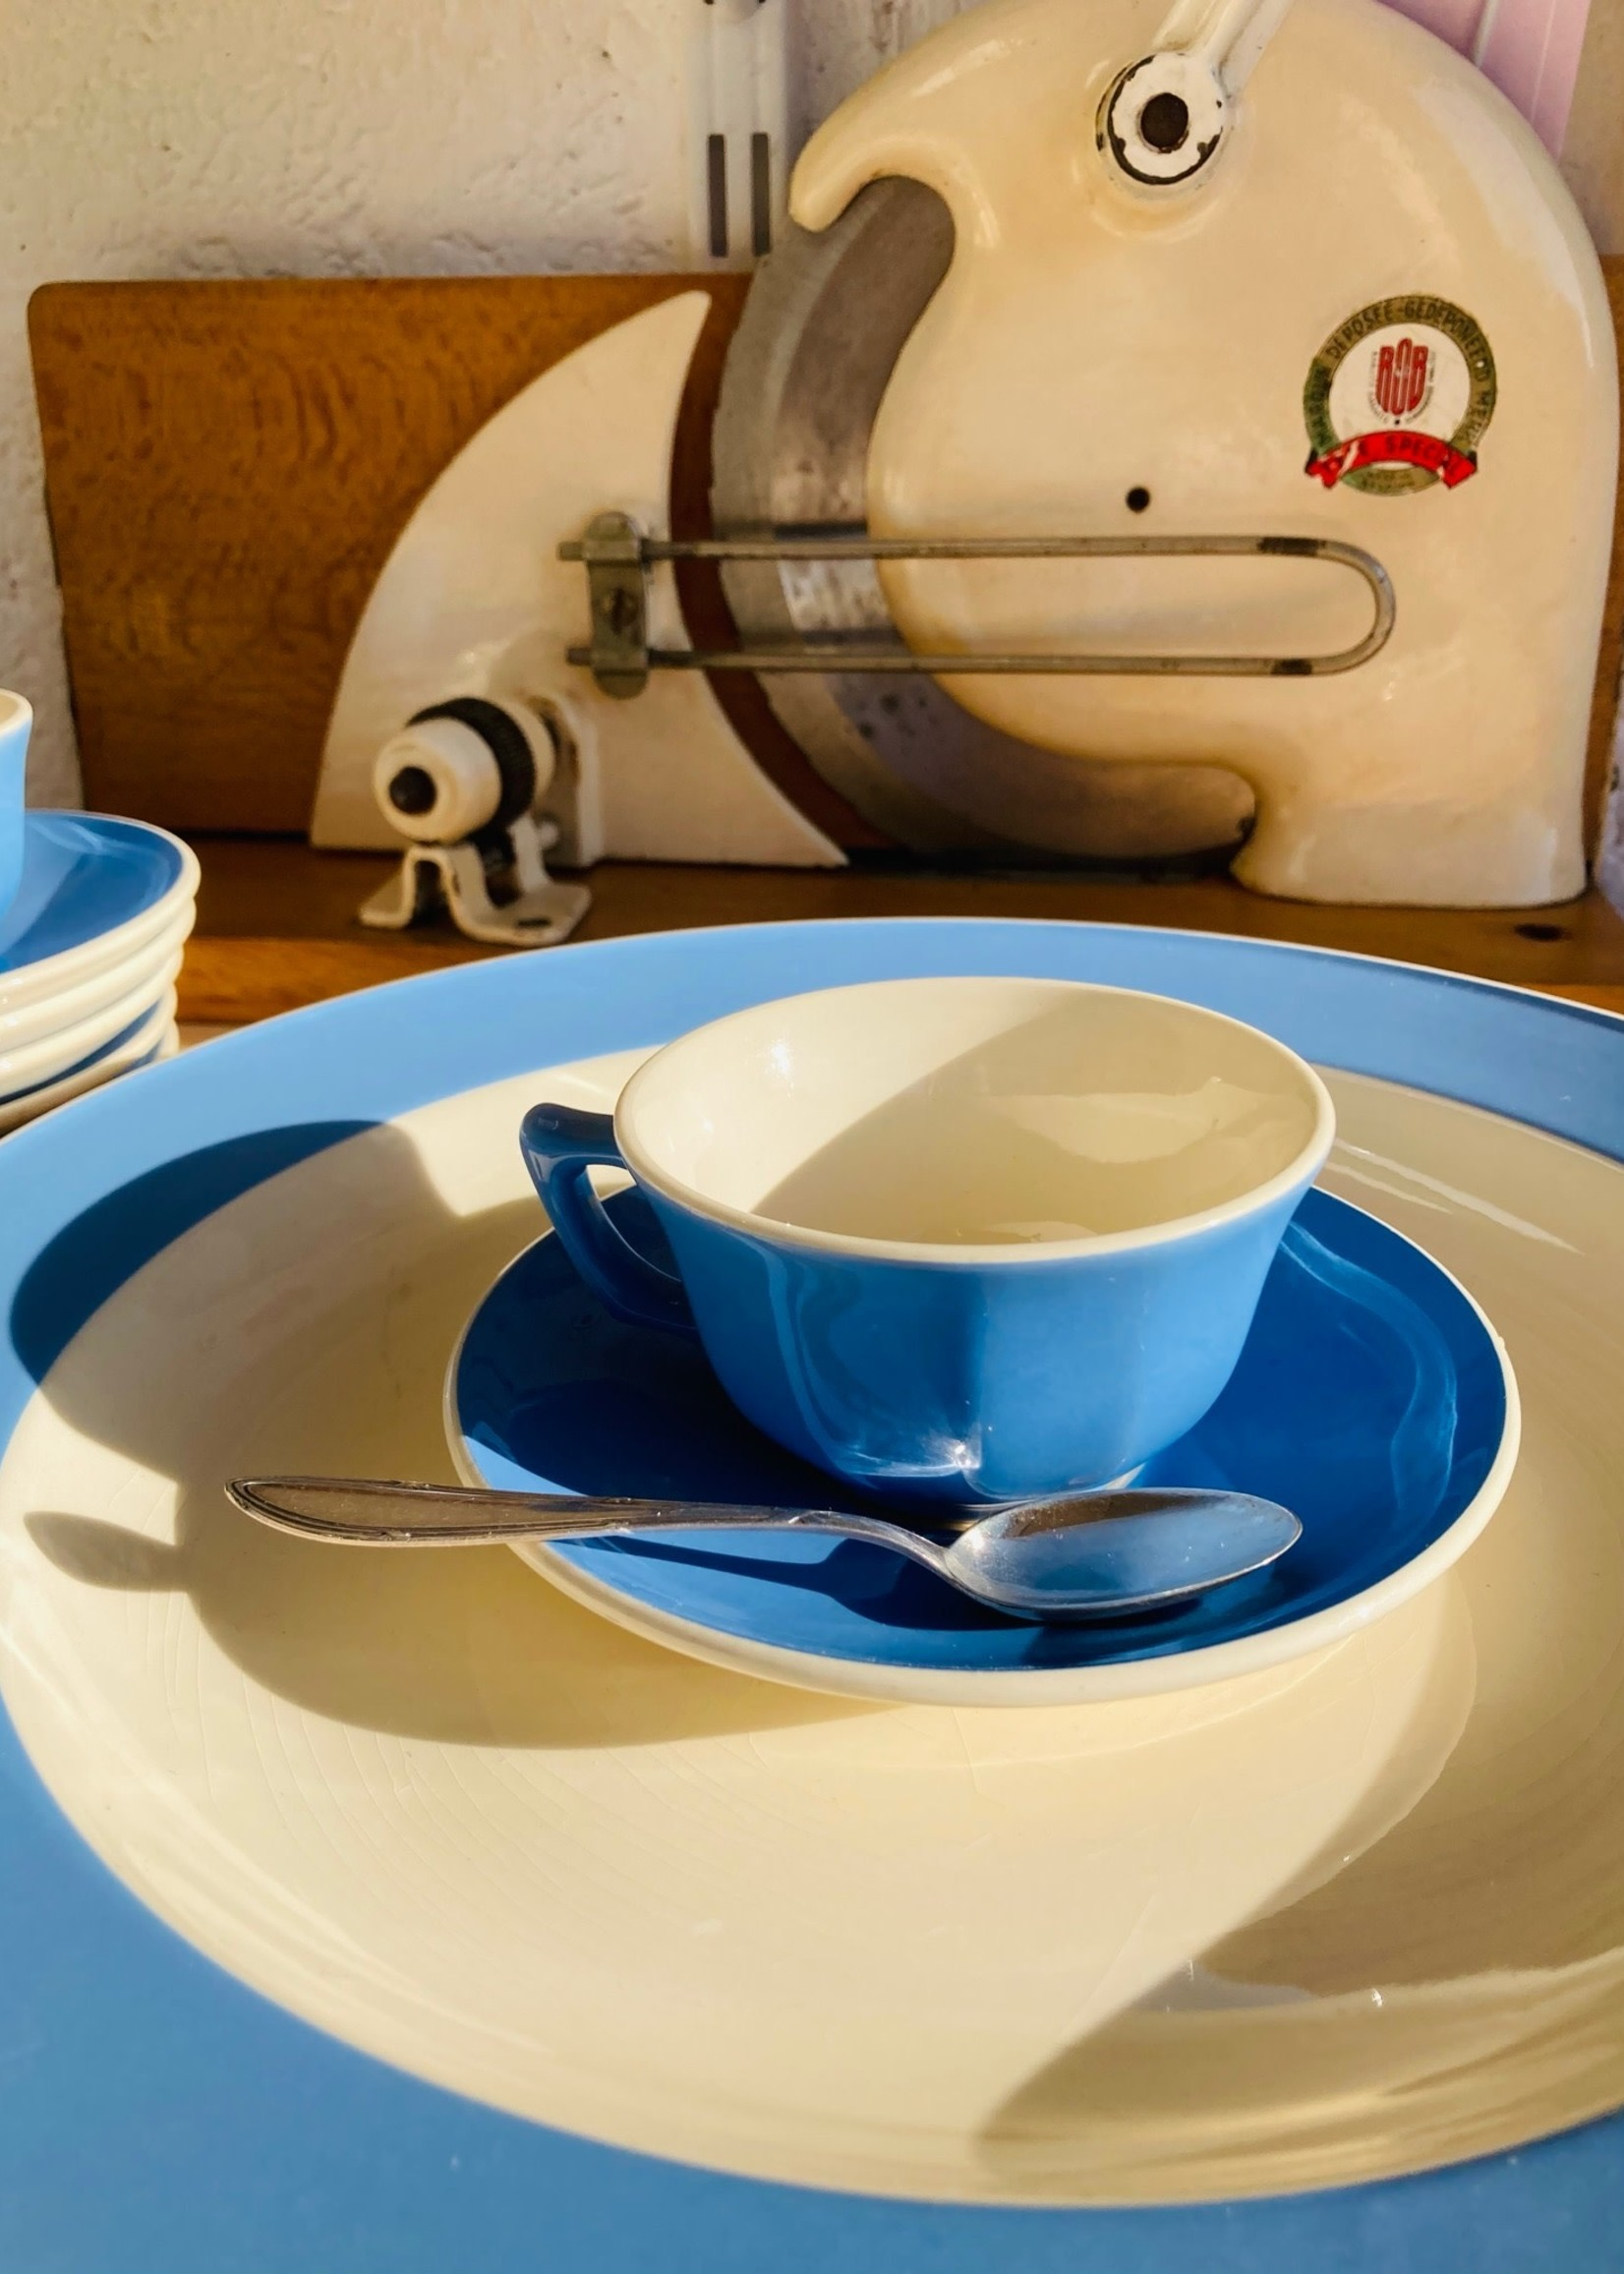 Round dish in blue Orléans by Villeroy & Boch